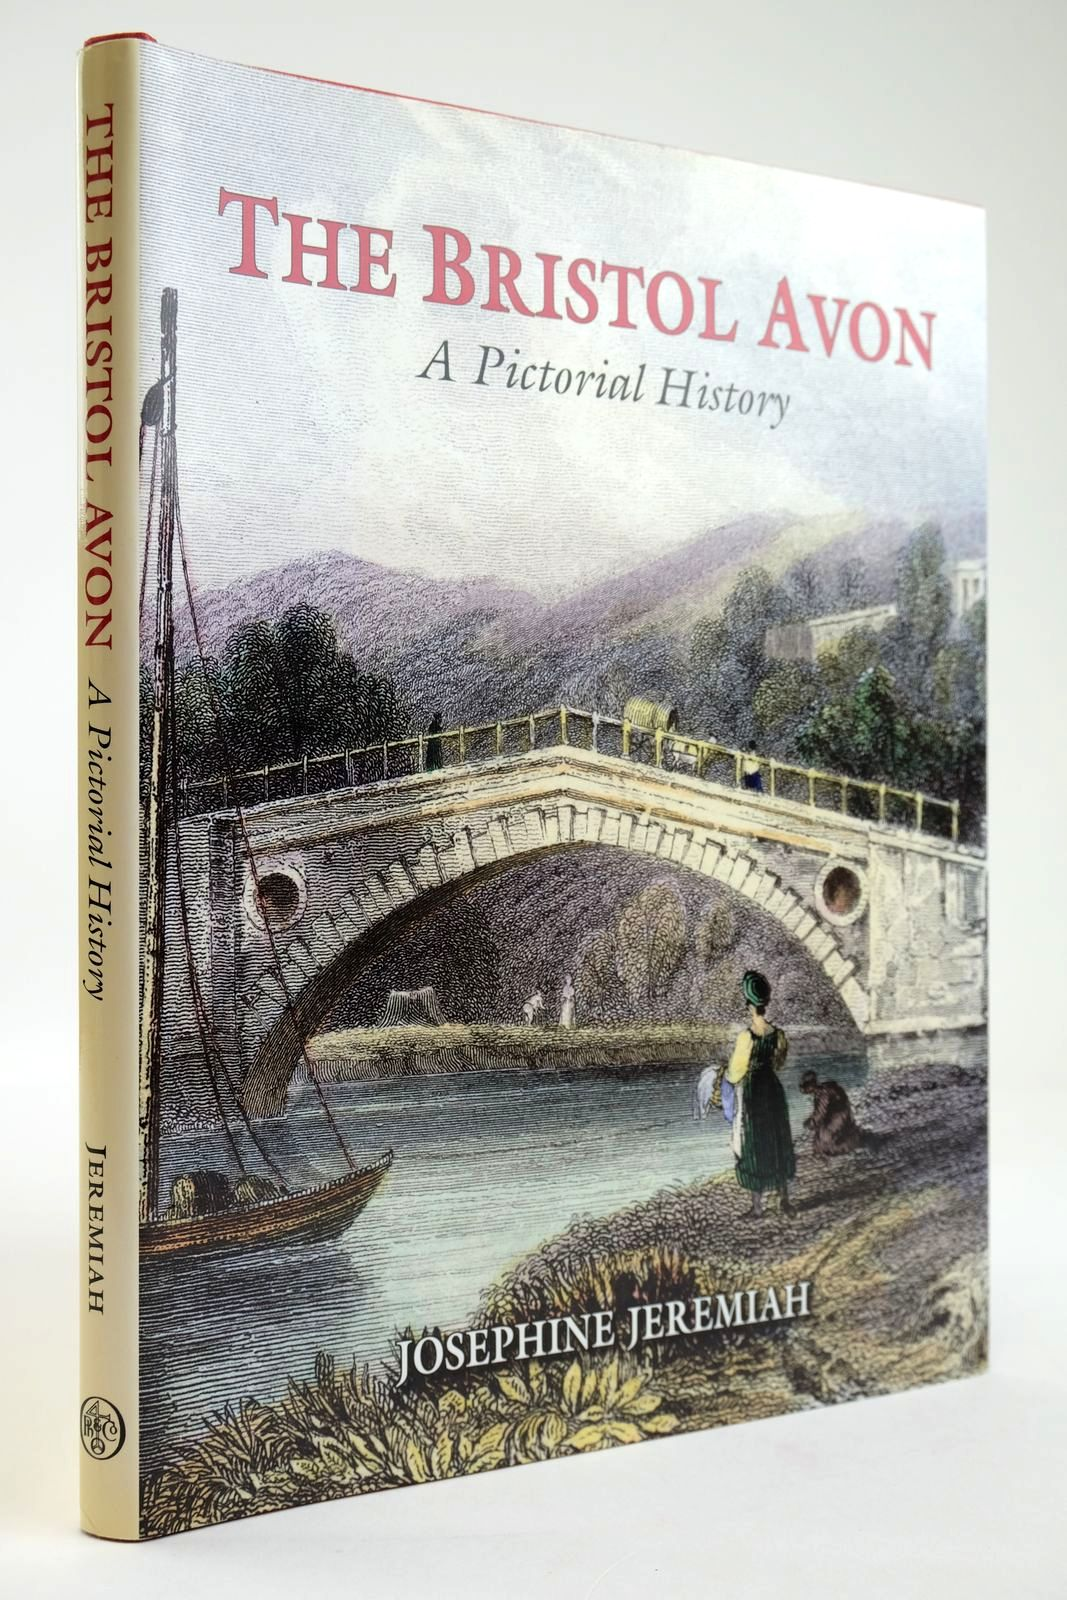 Photo of THE BRISTOL AVON A PICTORIAL HISTORY- Stock Number: 2133548